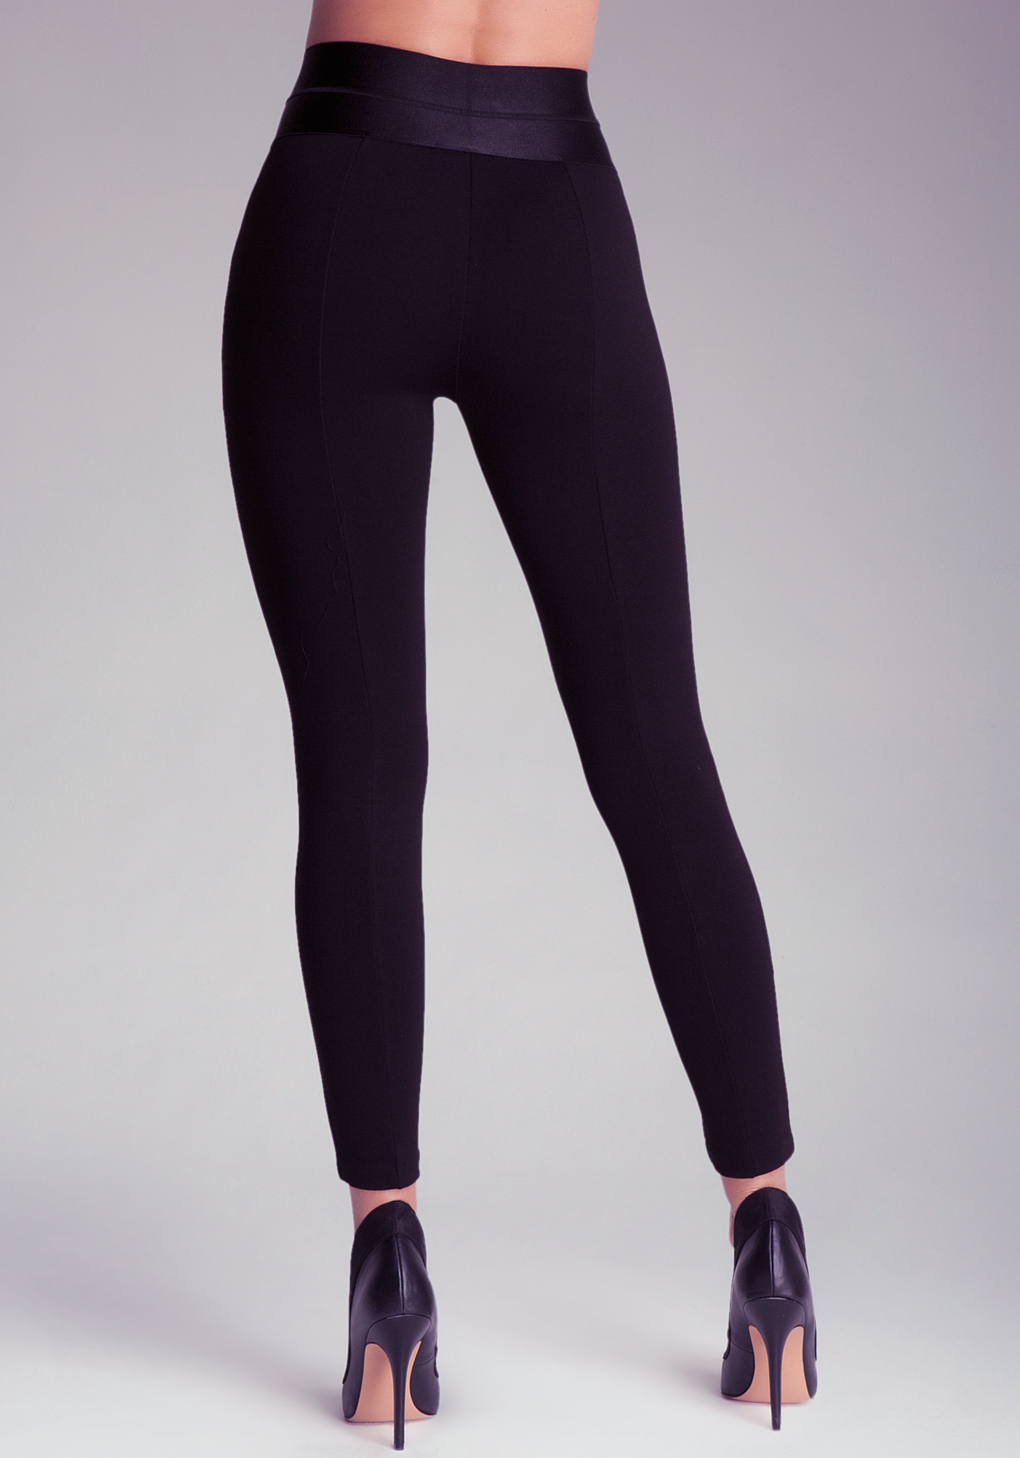 Bebe Petite High Waist Leggings in Black | Lyst